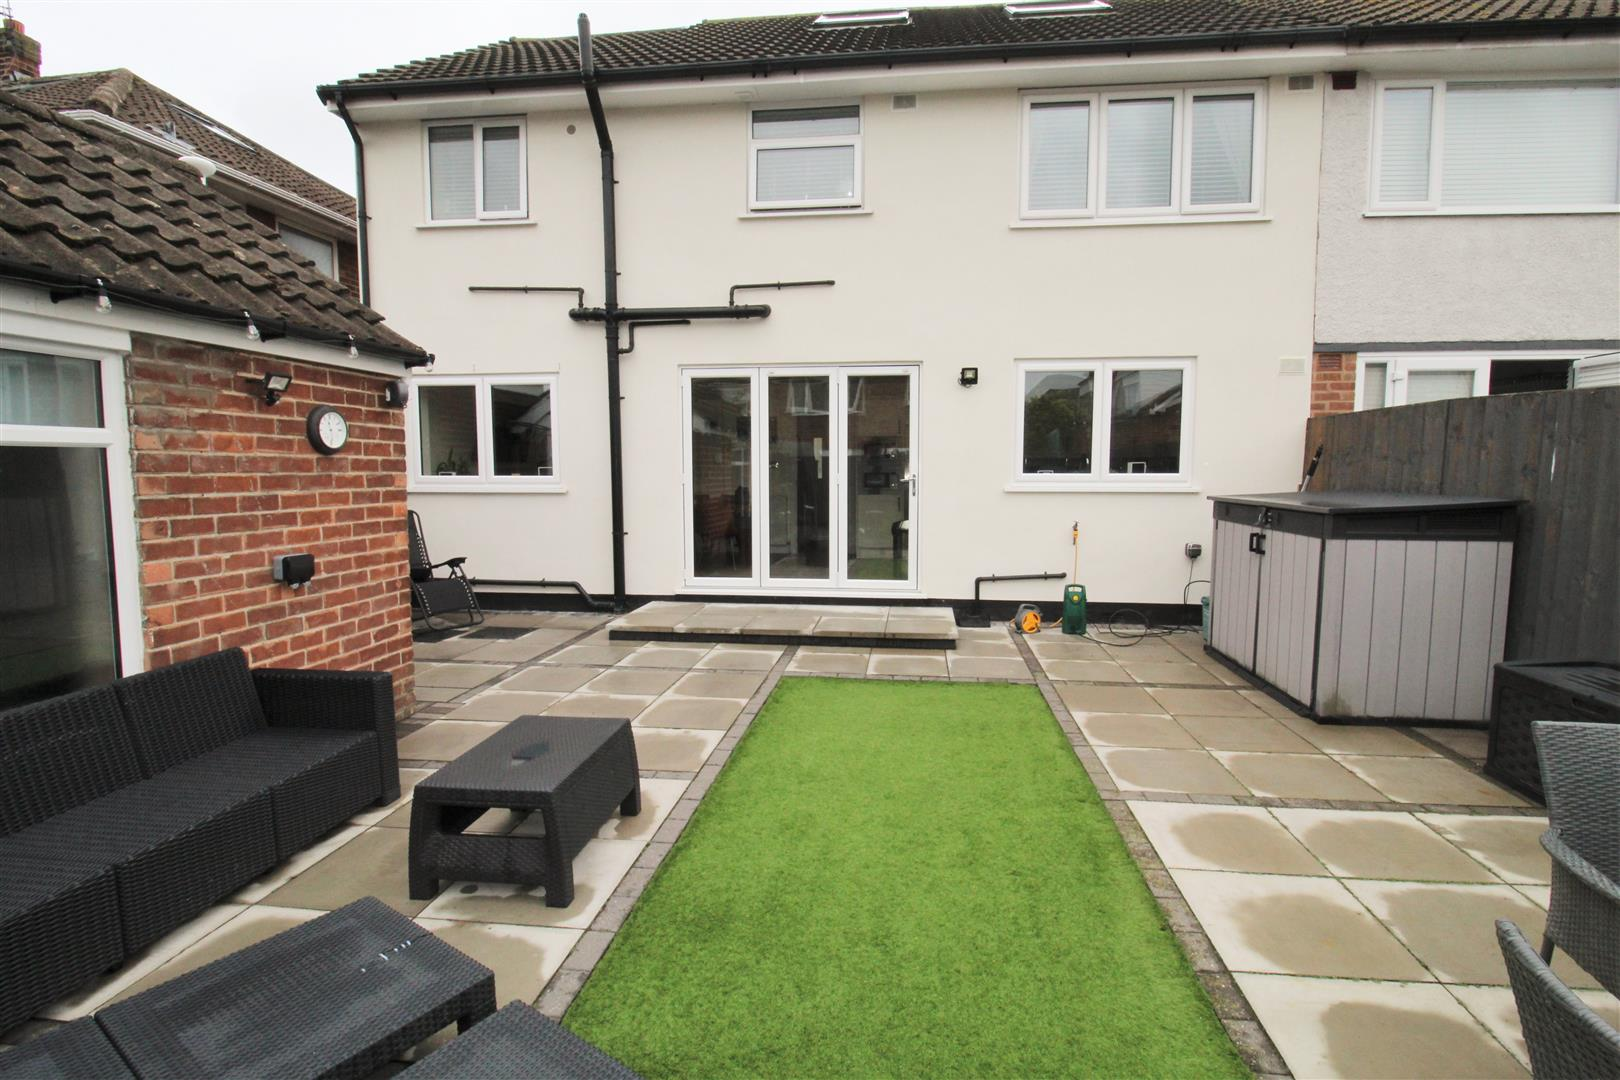 4 Bedrooms, House - Semi-Detached, Shrewsbury Avenue, Liverpool